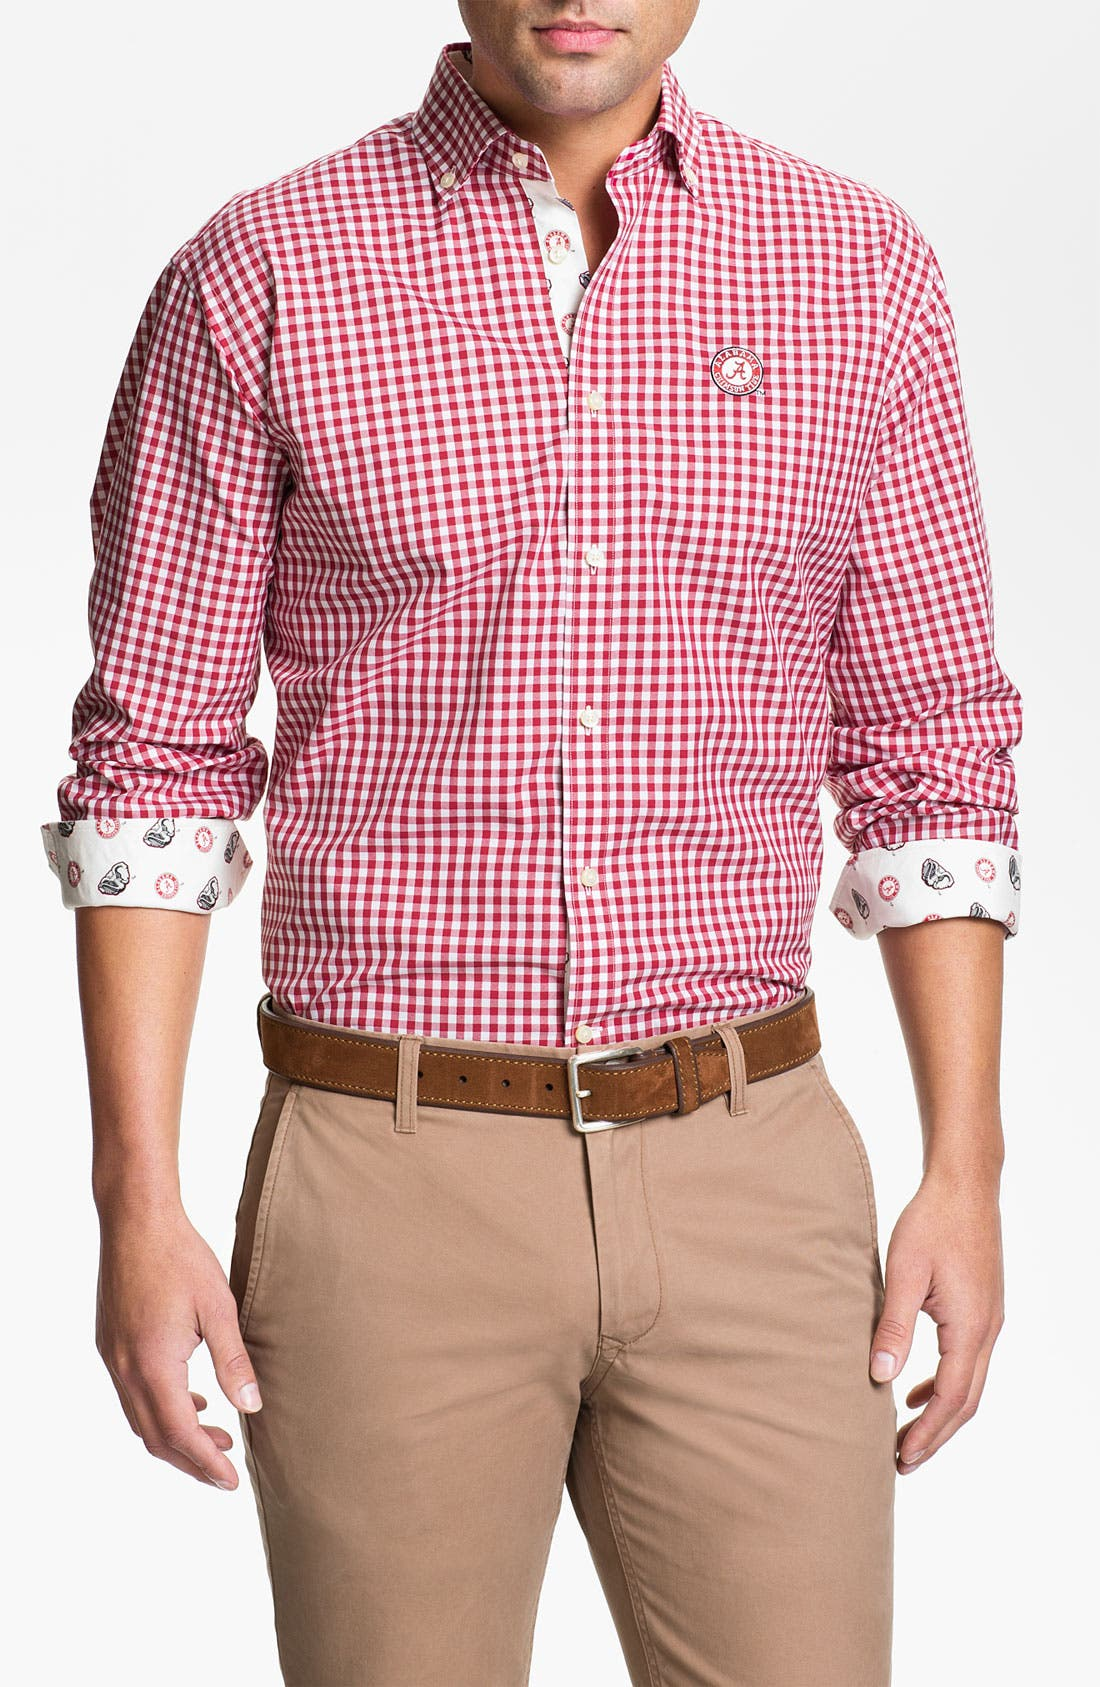 Alternate Image 1 Selected - Thomas Dean 'University of Alabama' Traditional Fit Sport Shirt